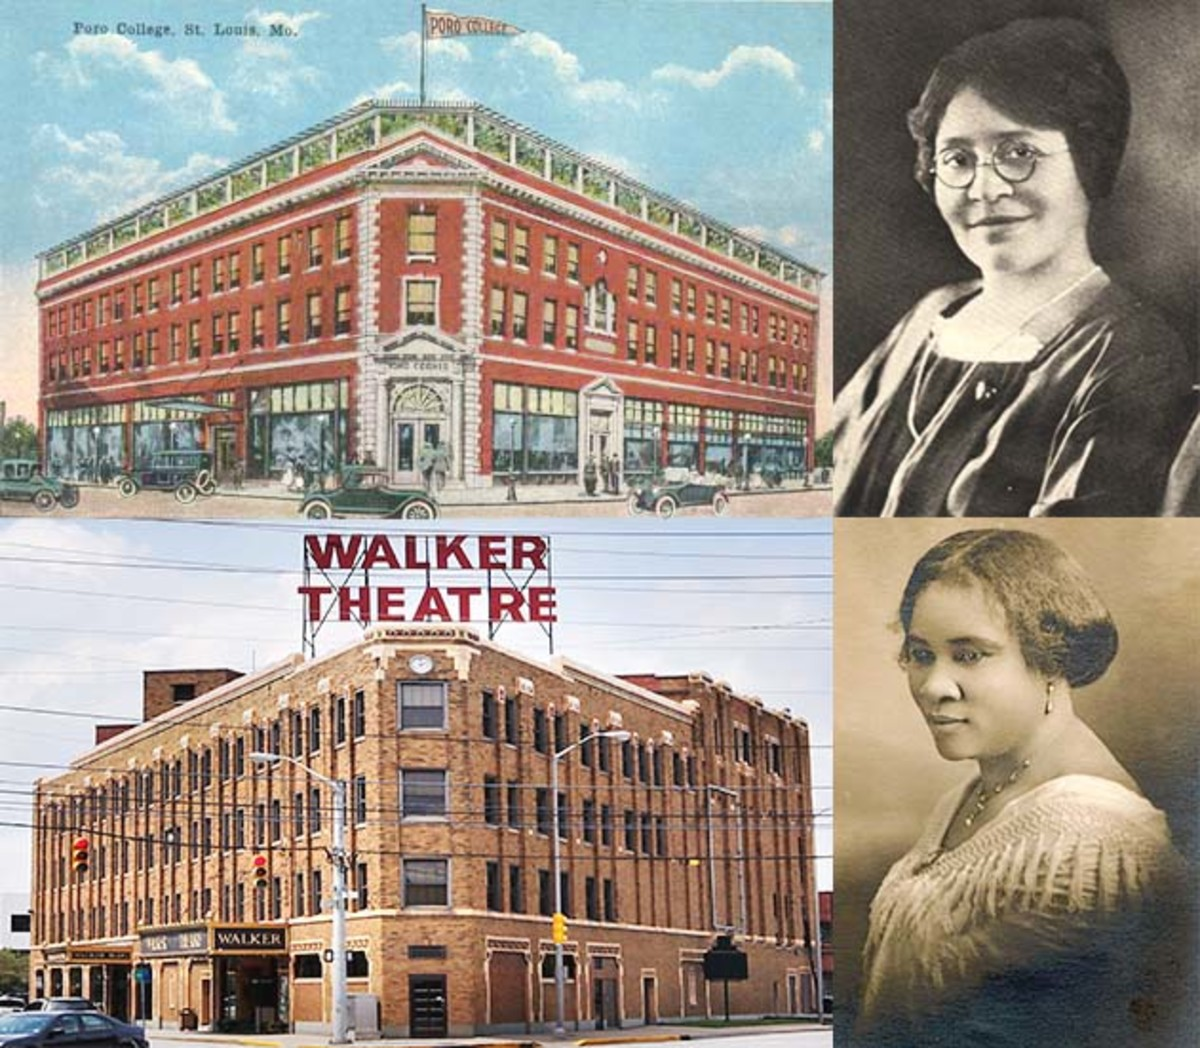 The Poro College Building was built in 1918 by Annie Malone. The Walker Legacy Center (Theater) was built in 1927, 8 years after Walker's death in 1919.